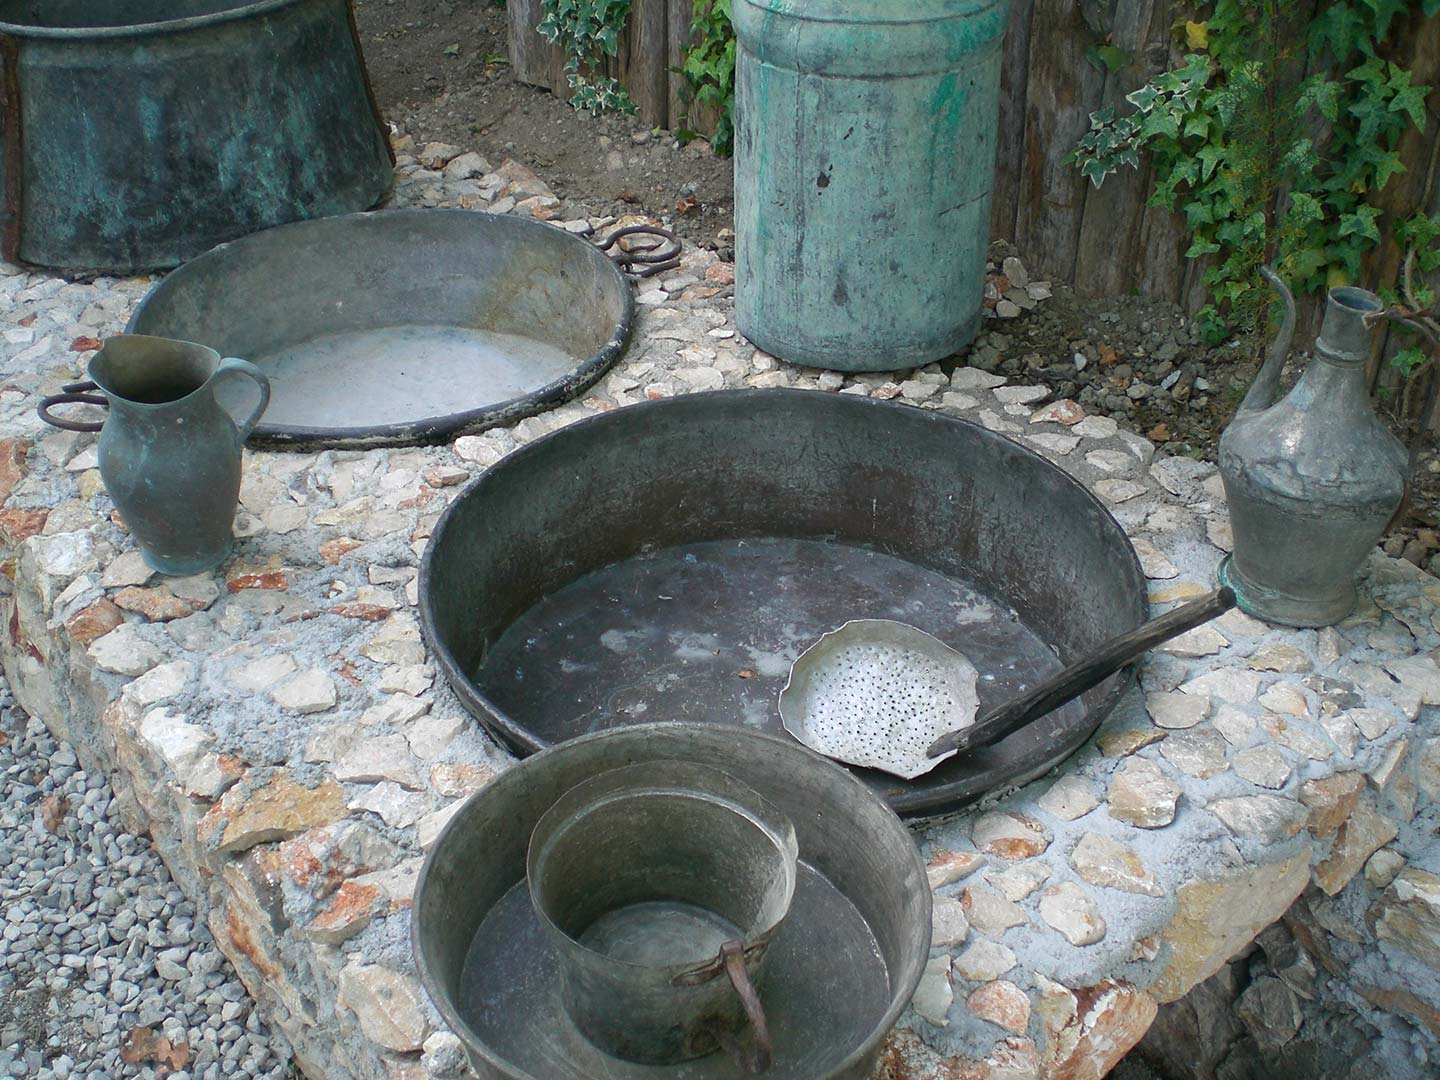 Garden Traditional Cooking Methods